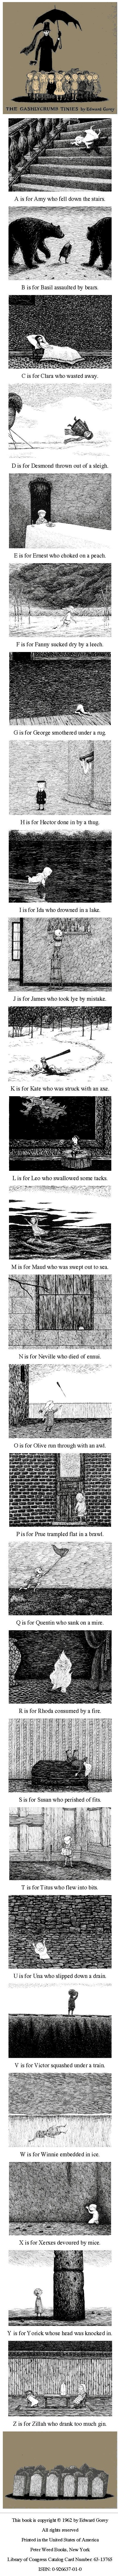 The Gashlycrumb Tinies by Edward Gorey This book was published in the 1960's...